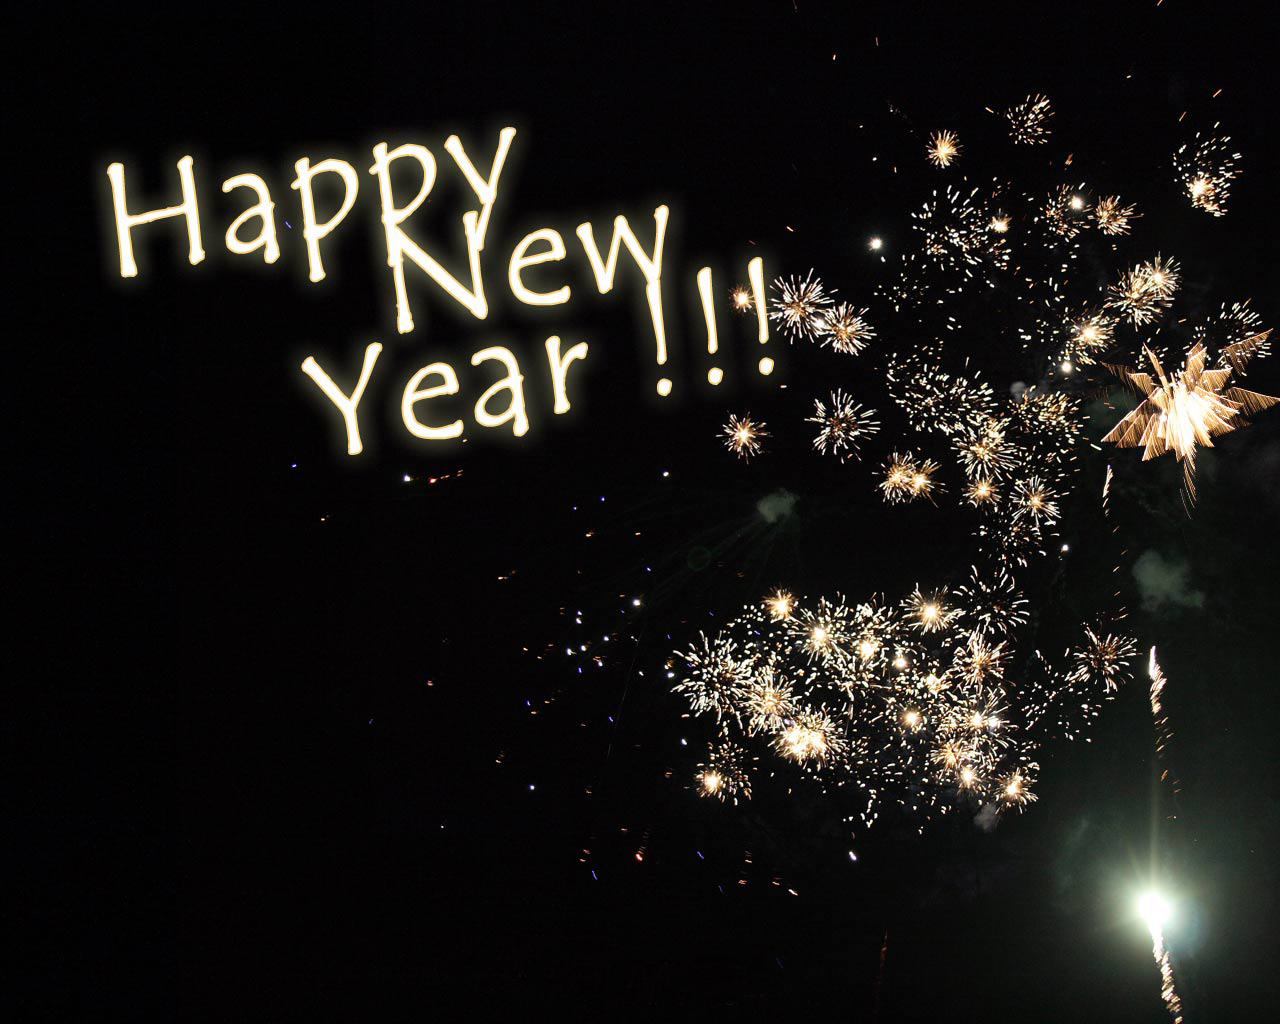 Happy New Year 2016 Animated Images and Wallpapers